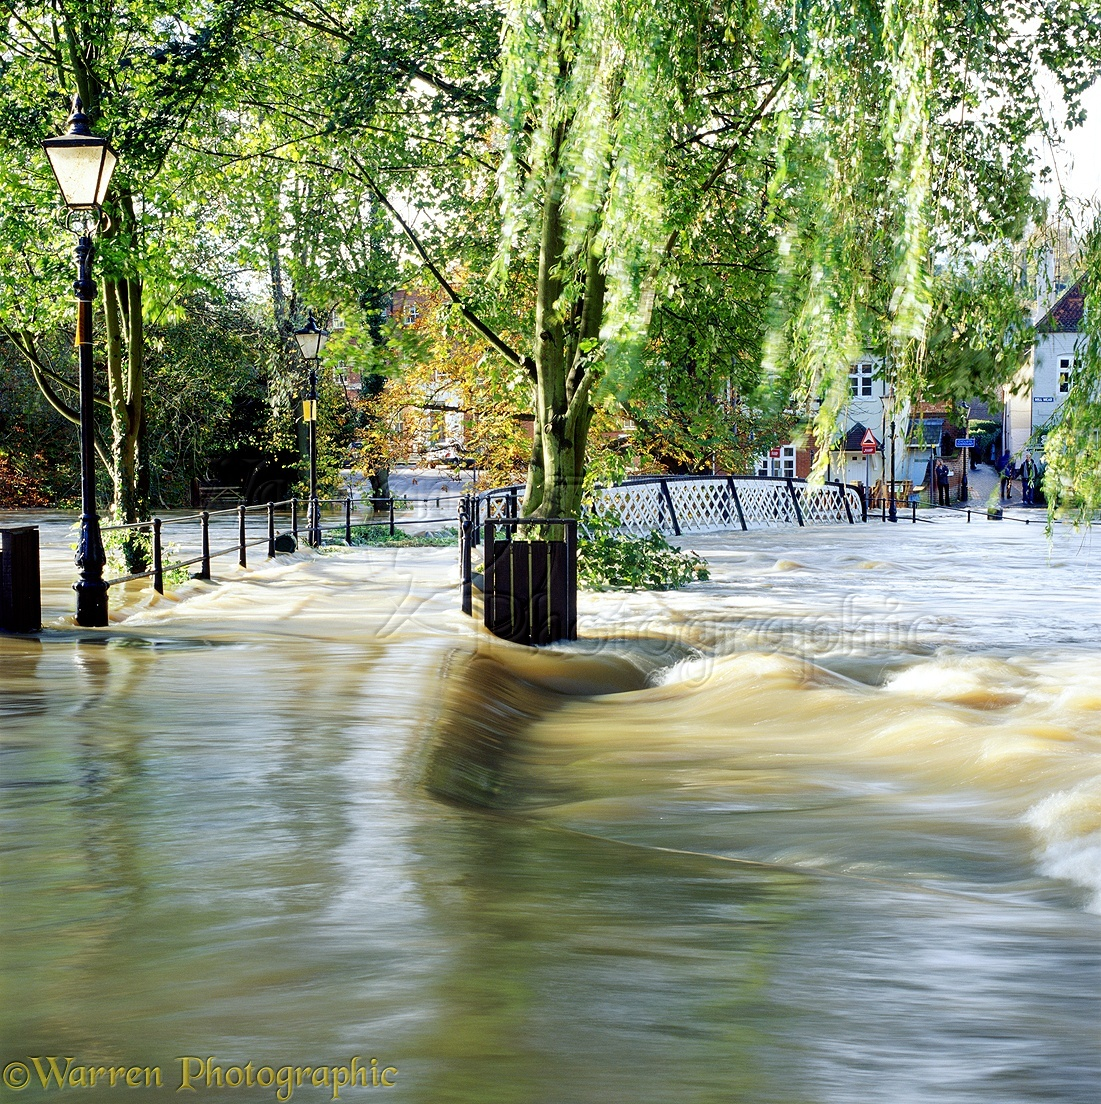 Flooding in Guildford photo WP02557